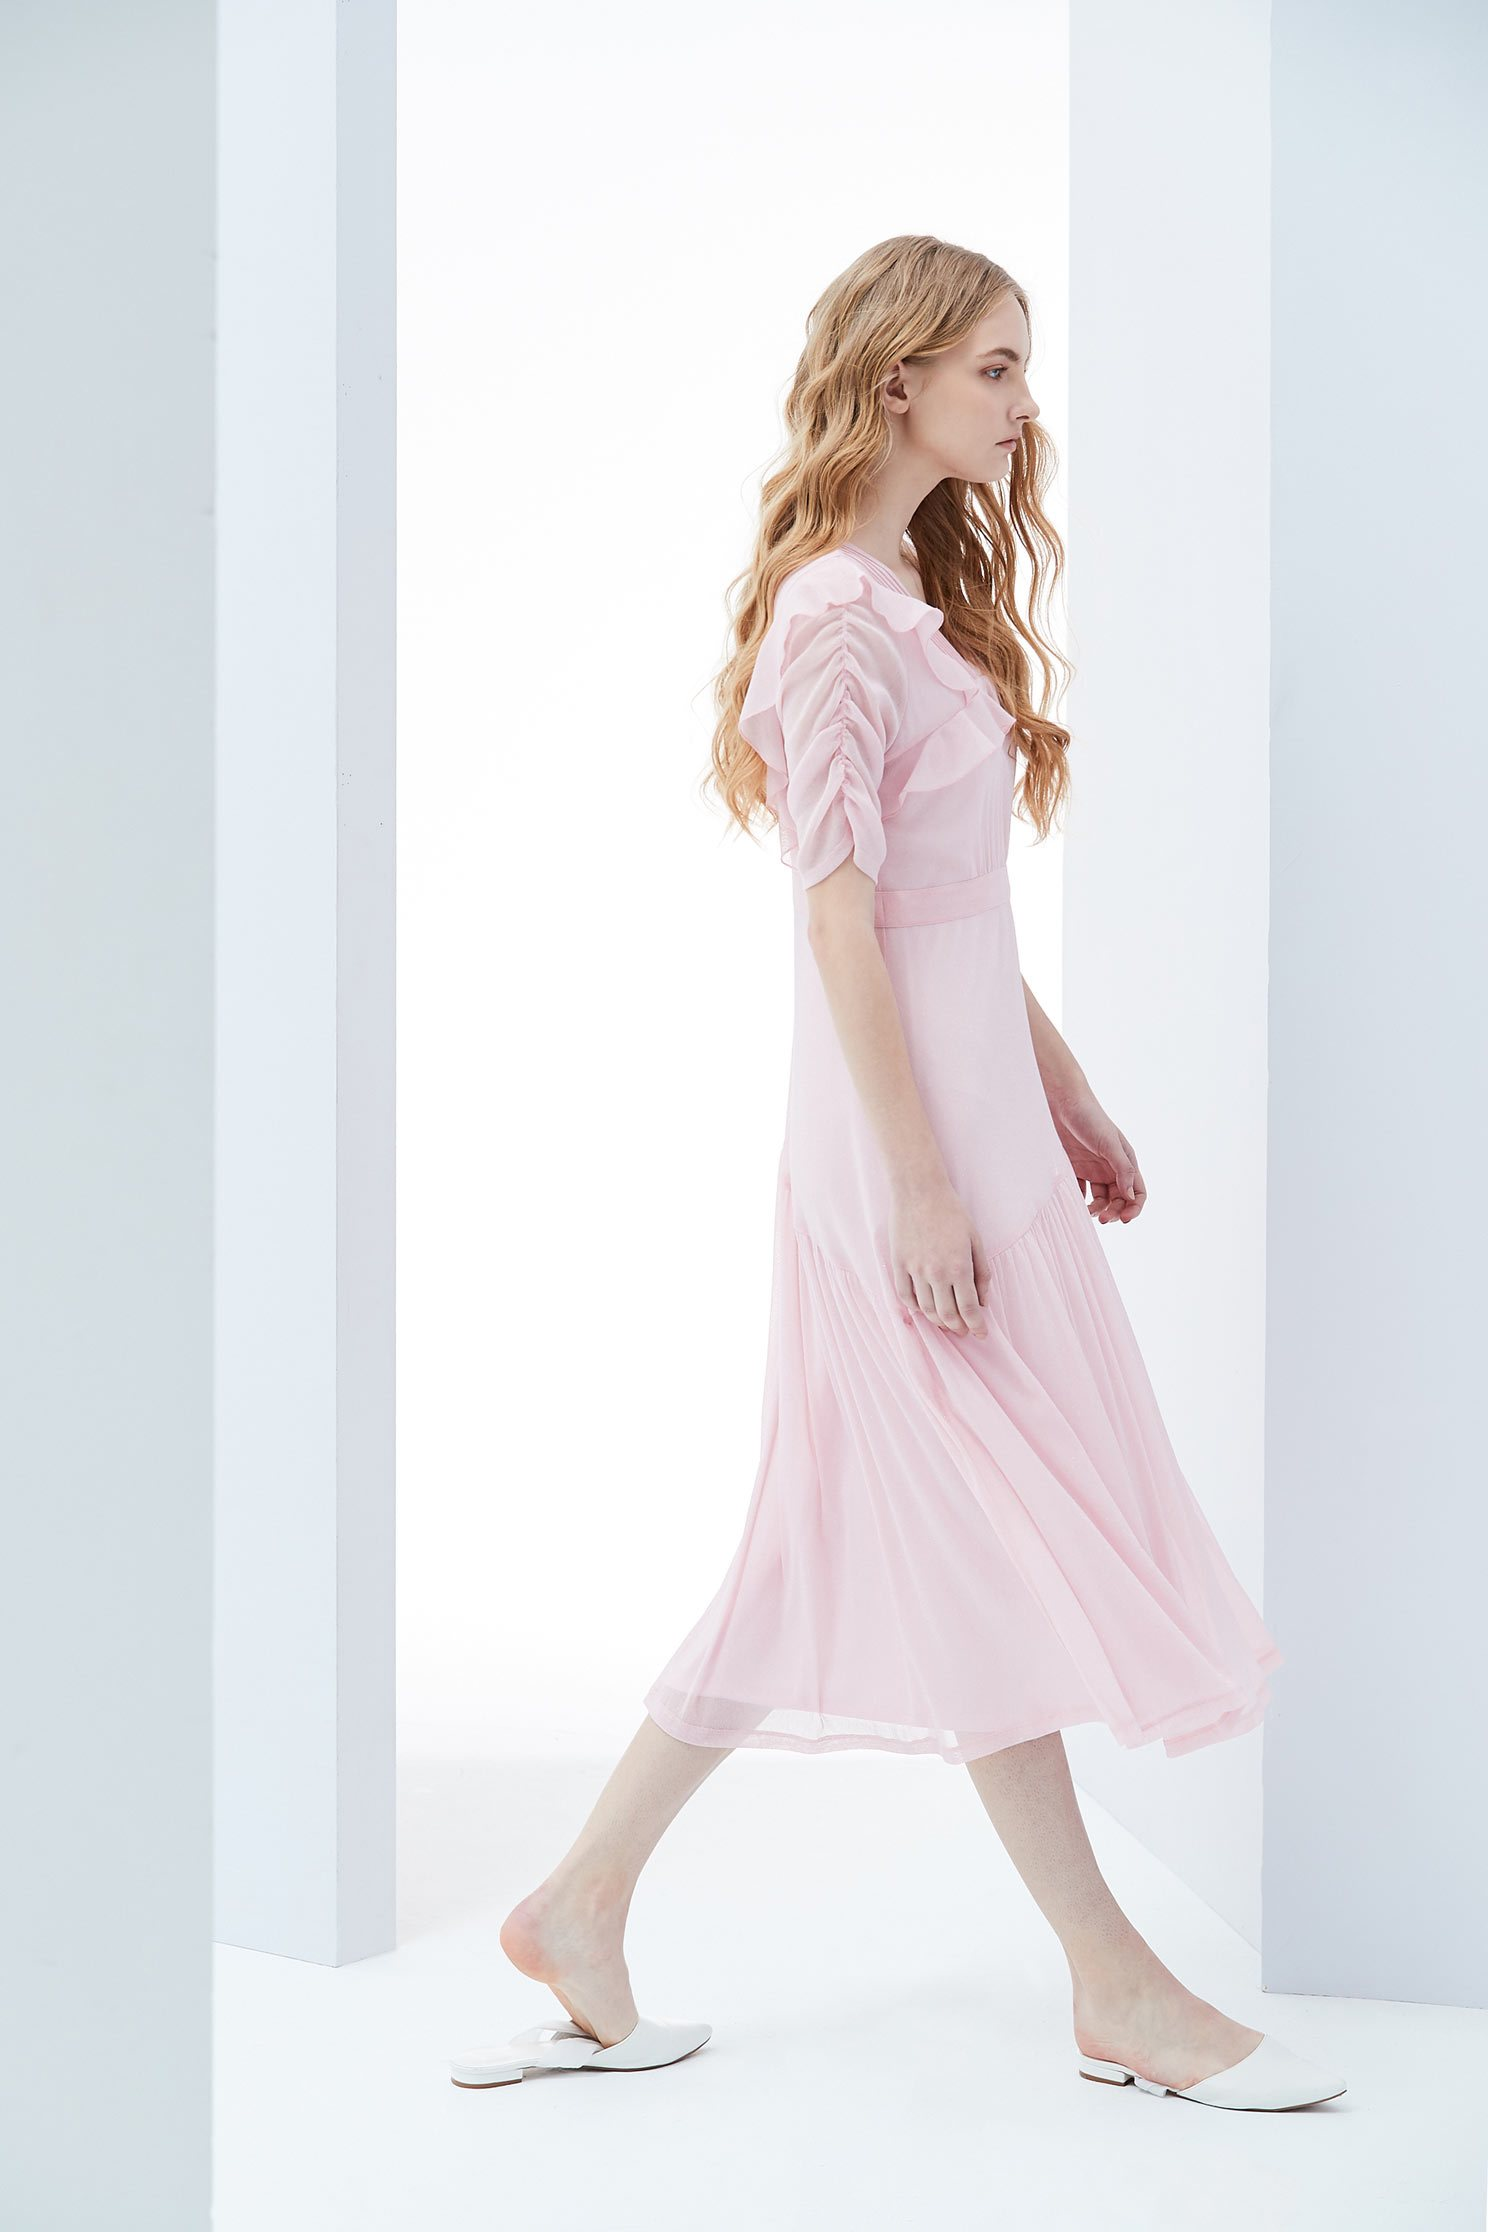 Romantic and elegant dress,Dress,Casual dress,Cocktail Dress,短袖洋裝,knitting,Knitted Dress